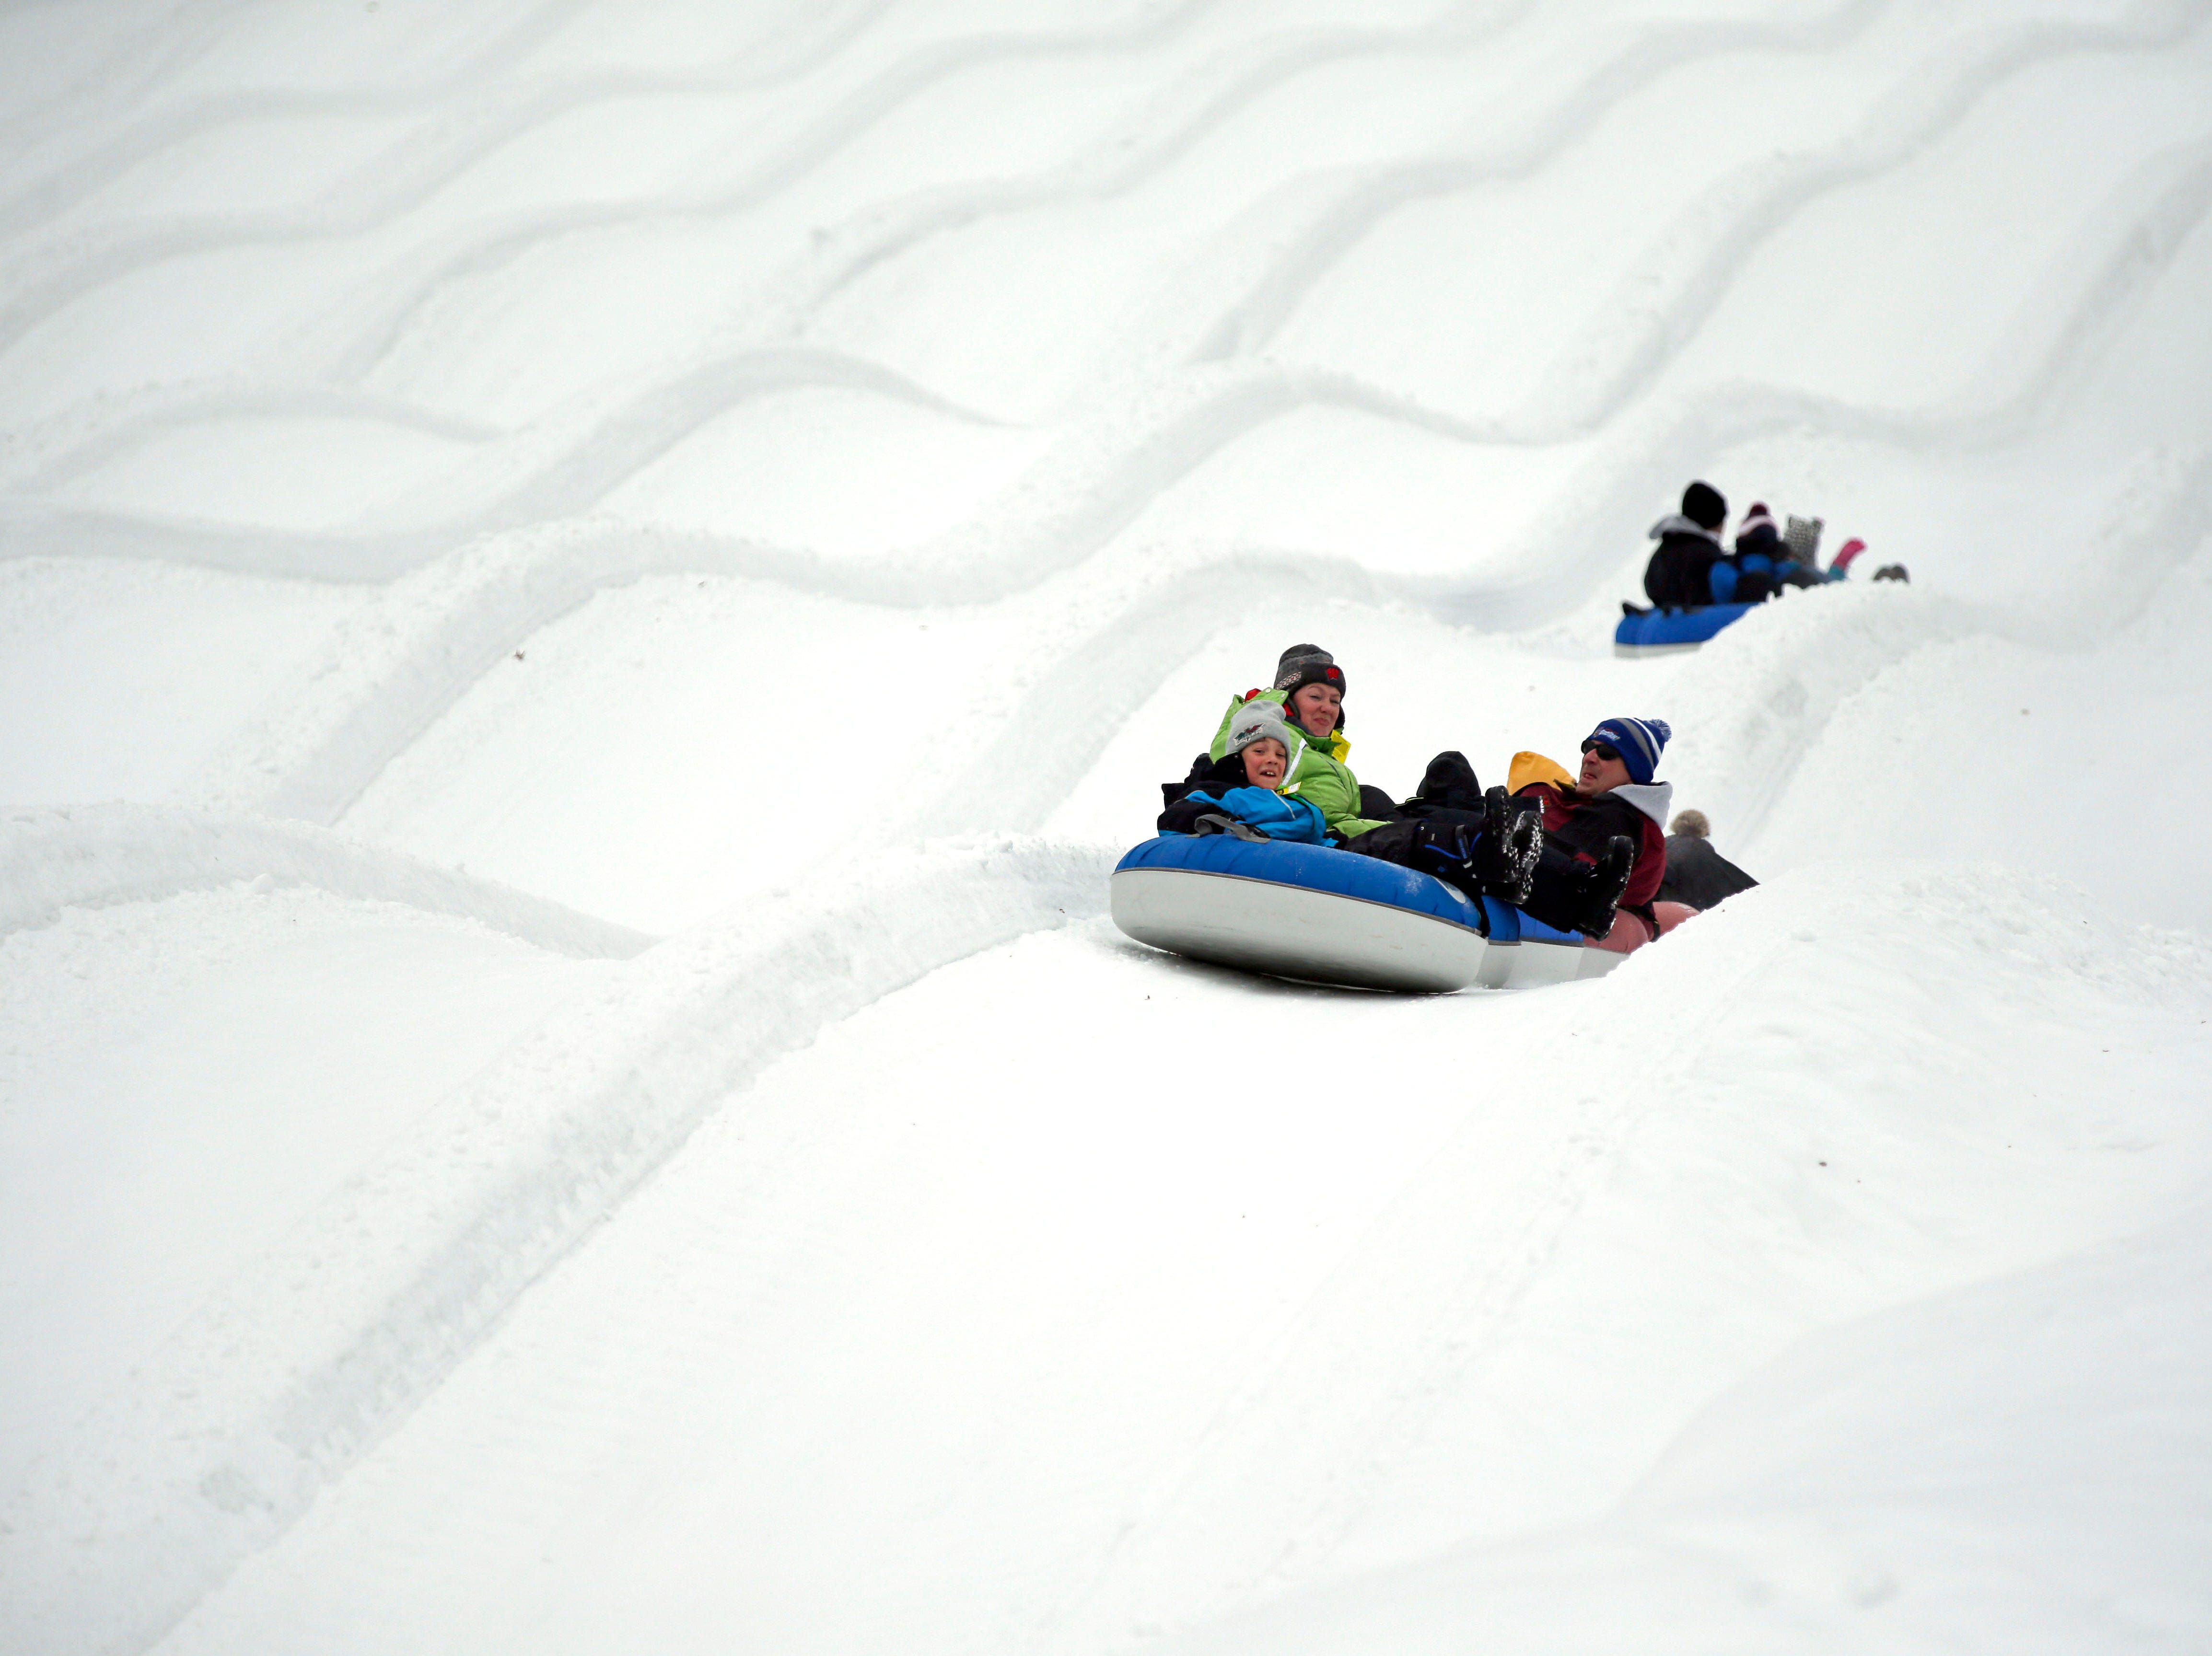 A mild winter day brings tubing fans to Nordic Mountain Sunday, January 13, 2019, near Wild Rose, Wis.